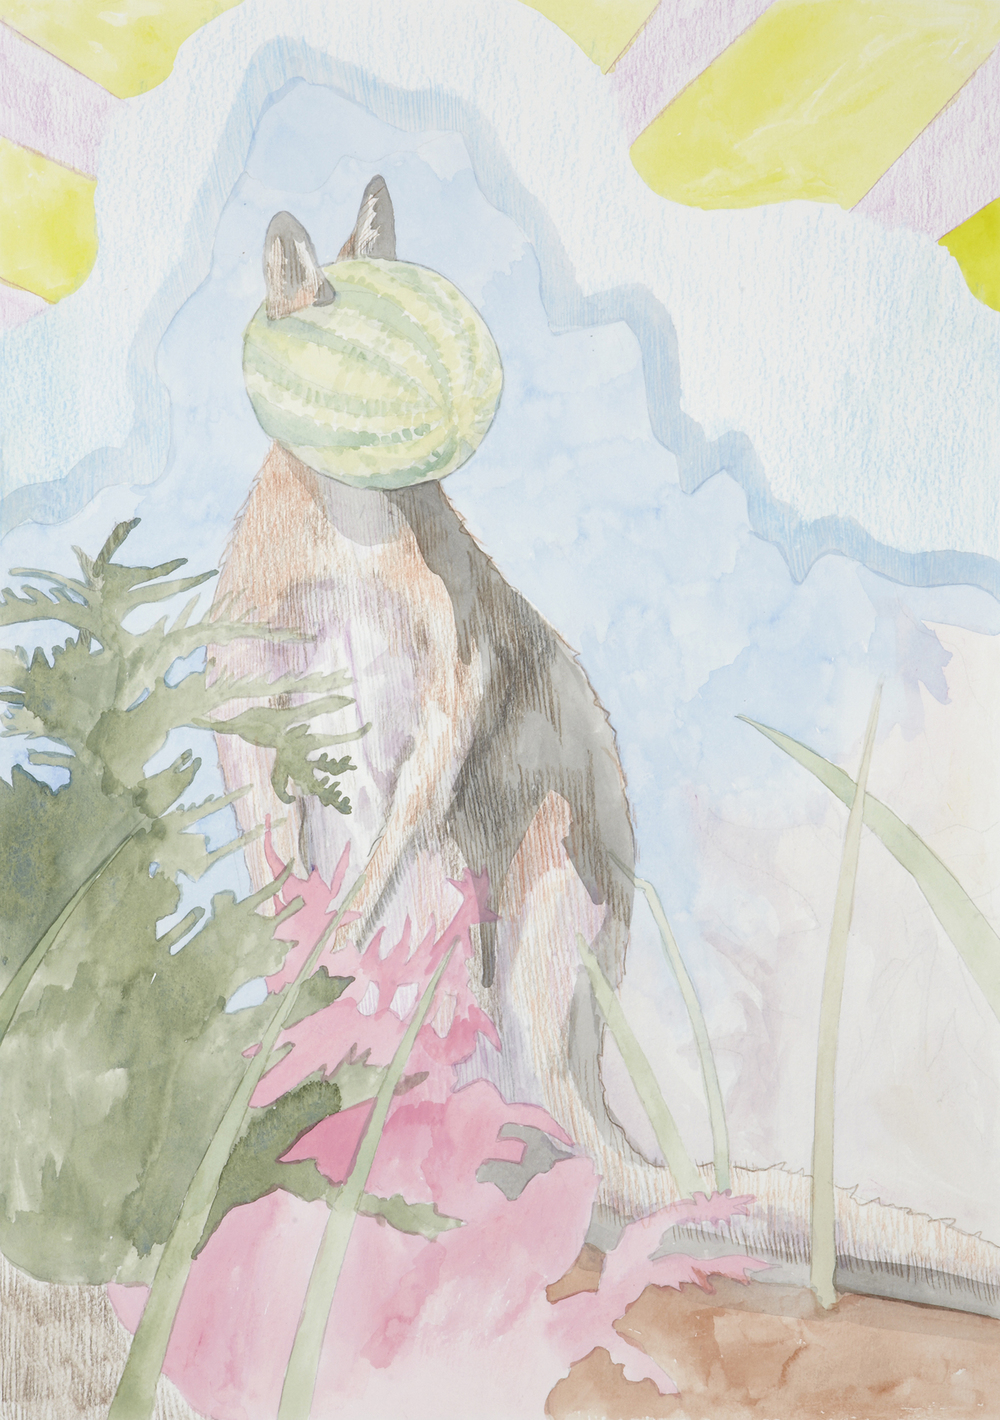 Pademelon #3, 2012, Watercolour and pencil on paper, 29.7 x 42.0 cm, Photo: Sam Scoufos